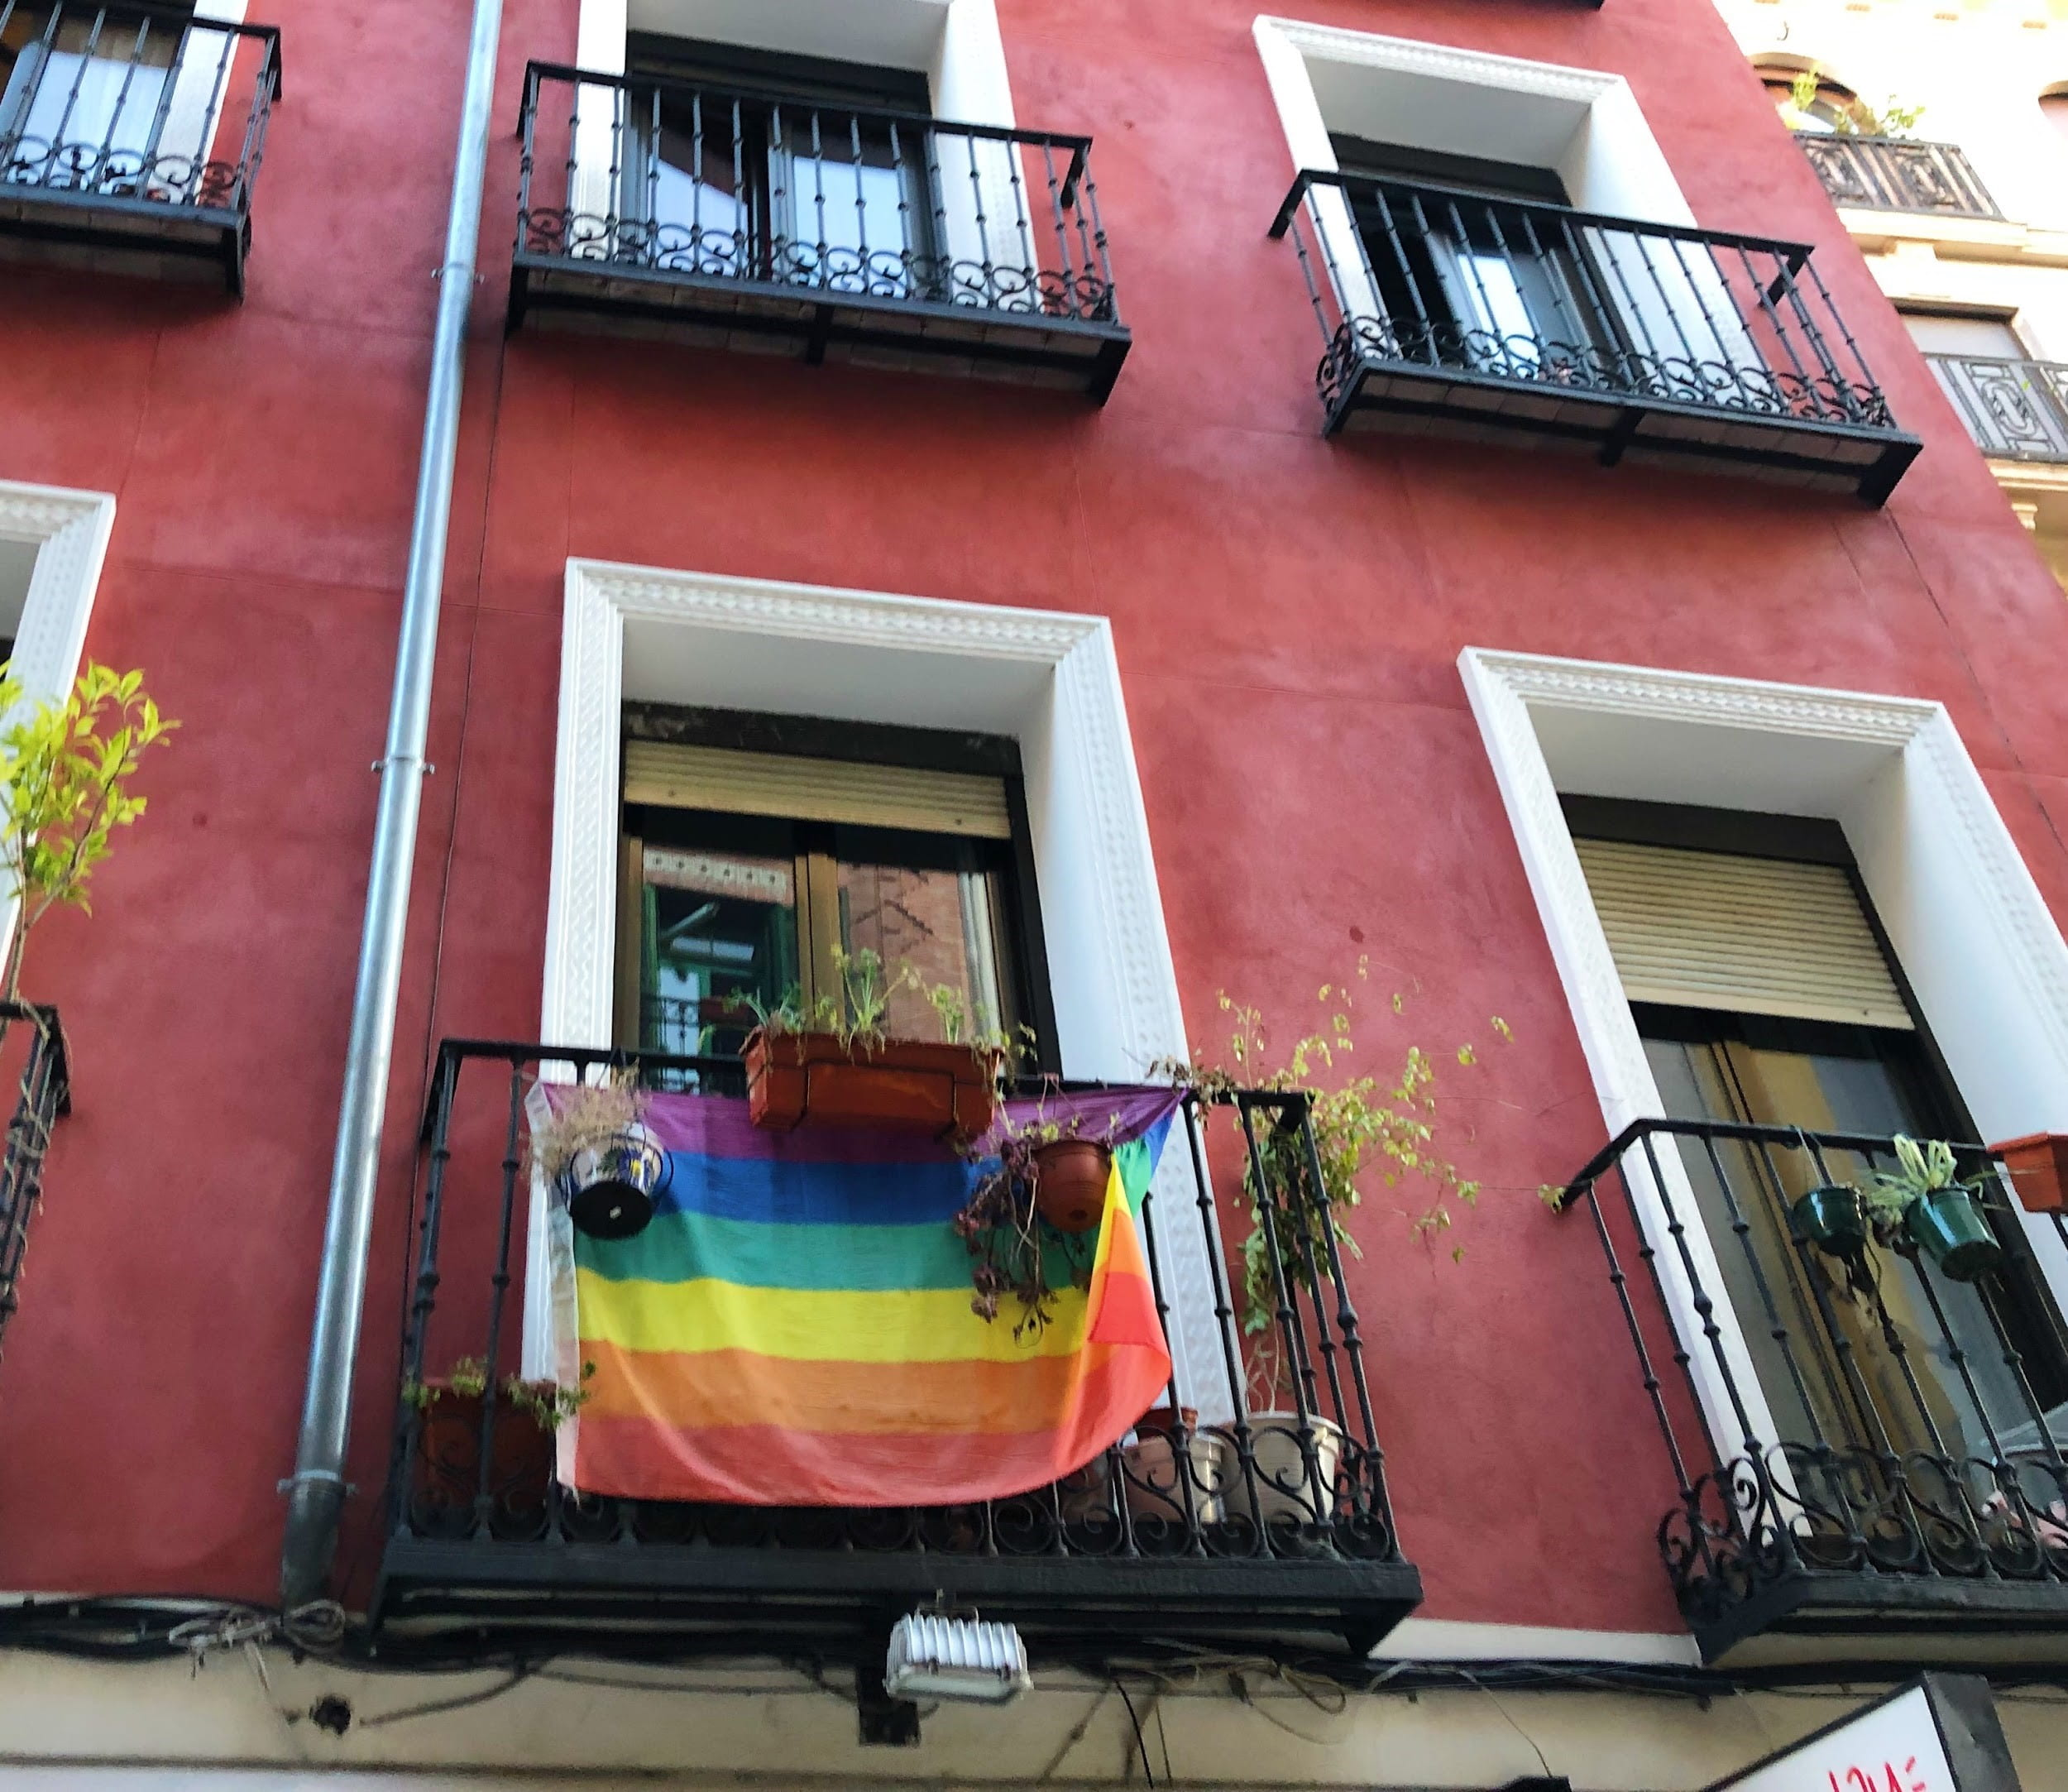 Red building with pride flag hanging from balcony